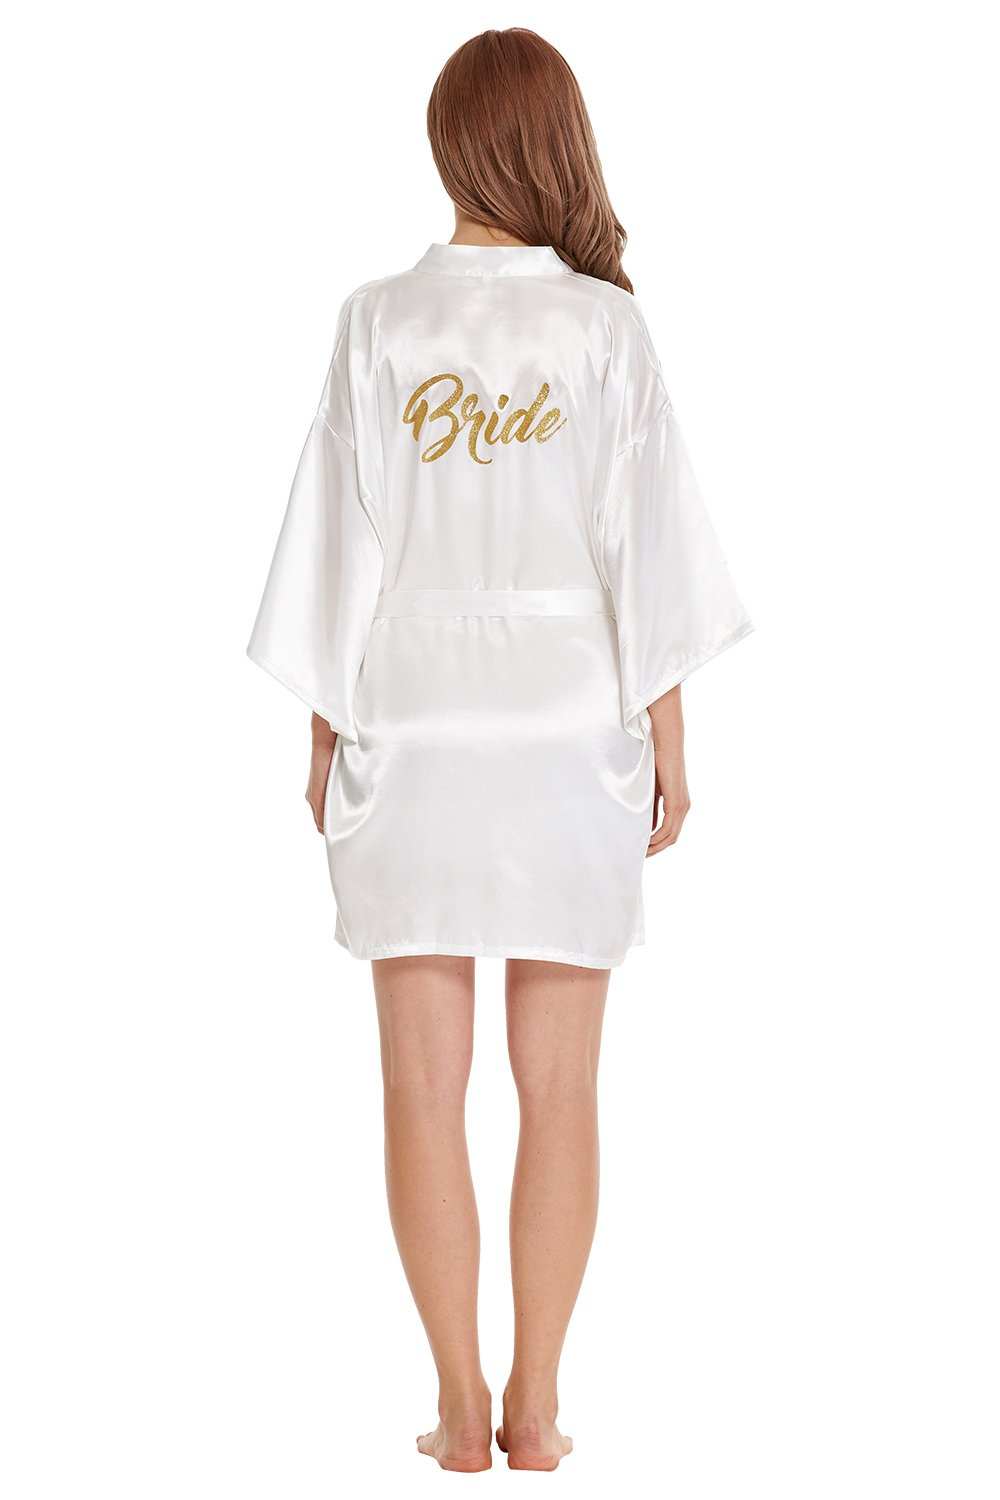 CHOICE99 Women's Bride Robe Short Kimono Robe Silk Satin Robes for Wedding Gifts with Gold Glitter (Gold(Bride), Medium)